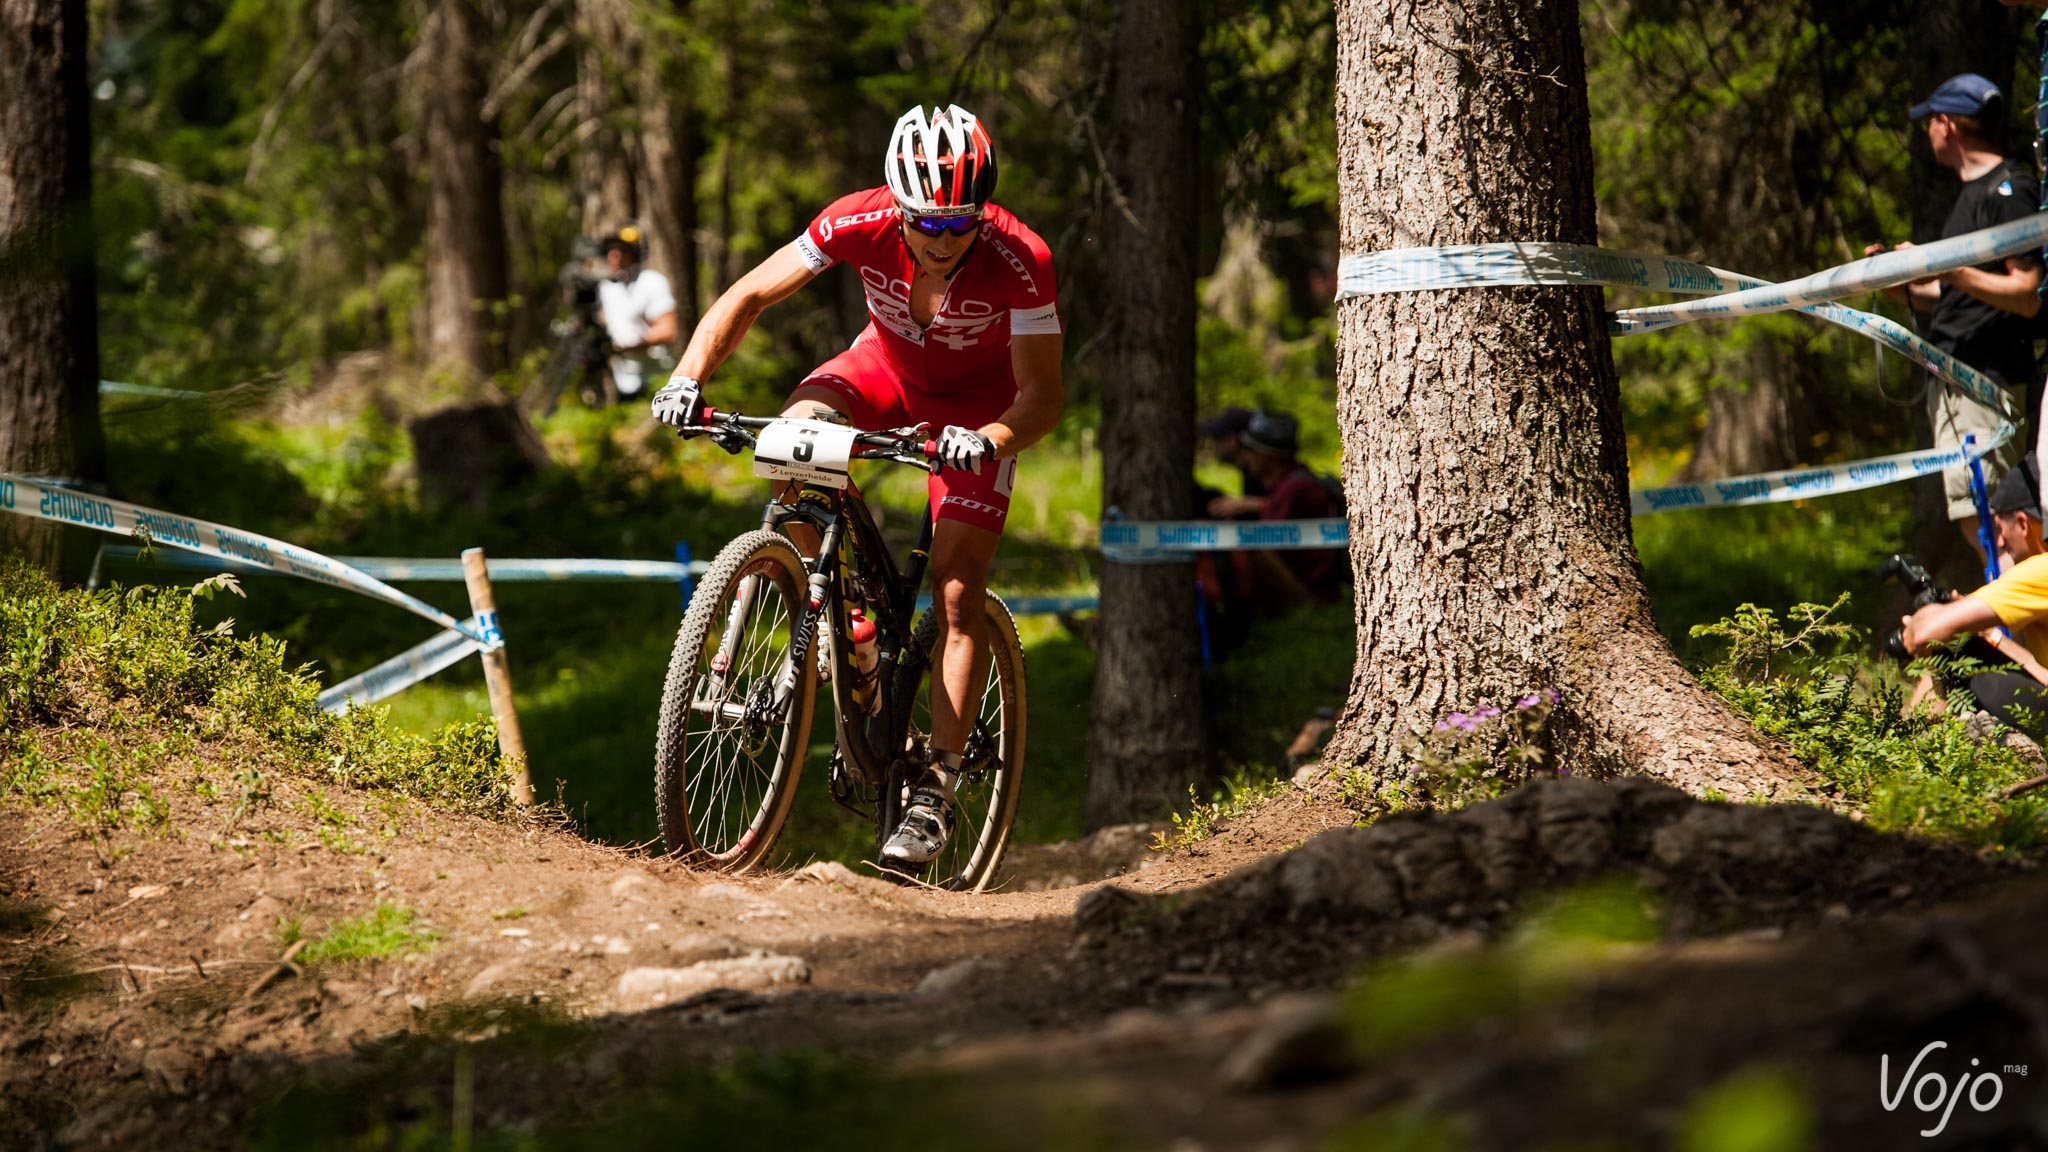 Light-WorldCup-Lenzerheide-2015-XCO-Hommes-1